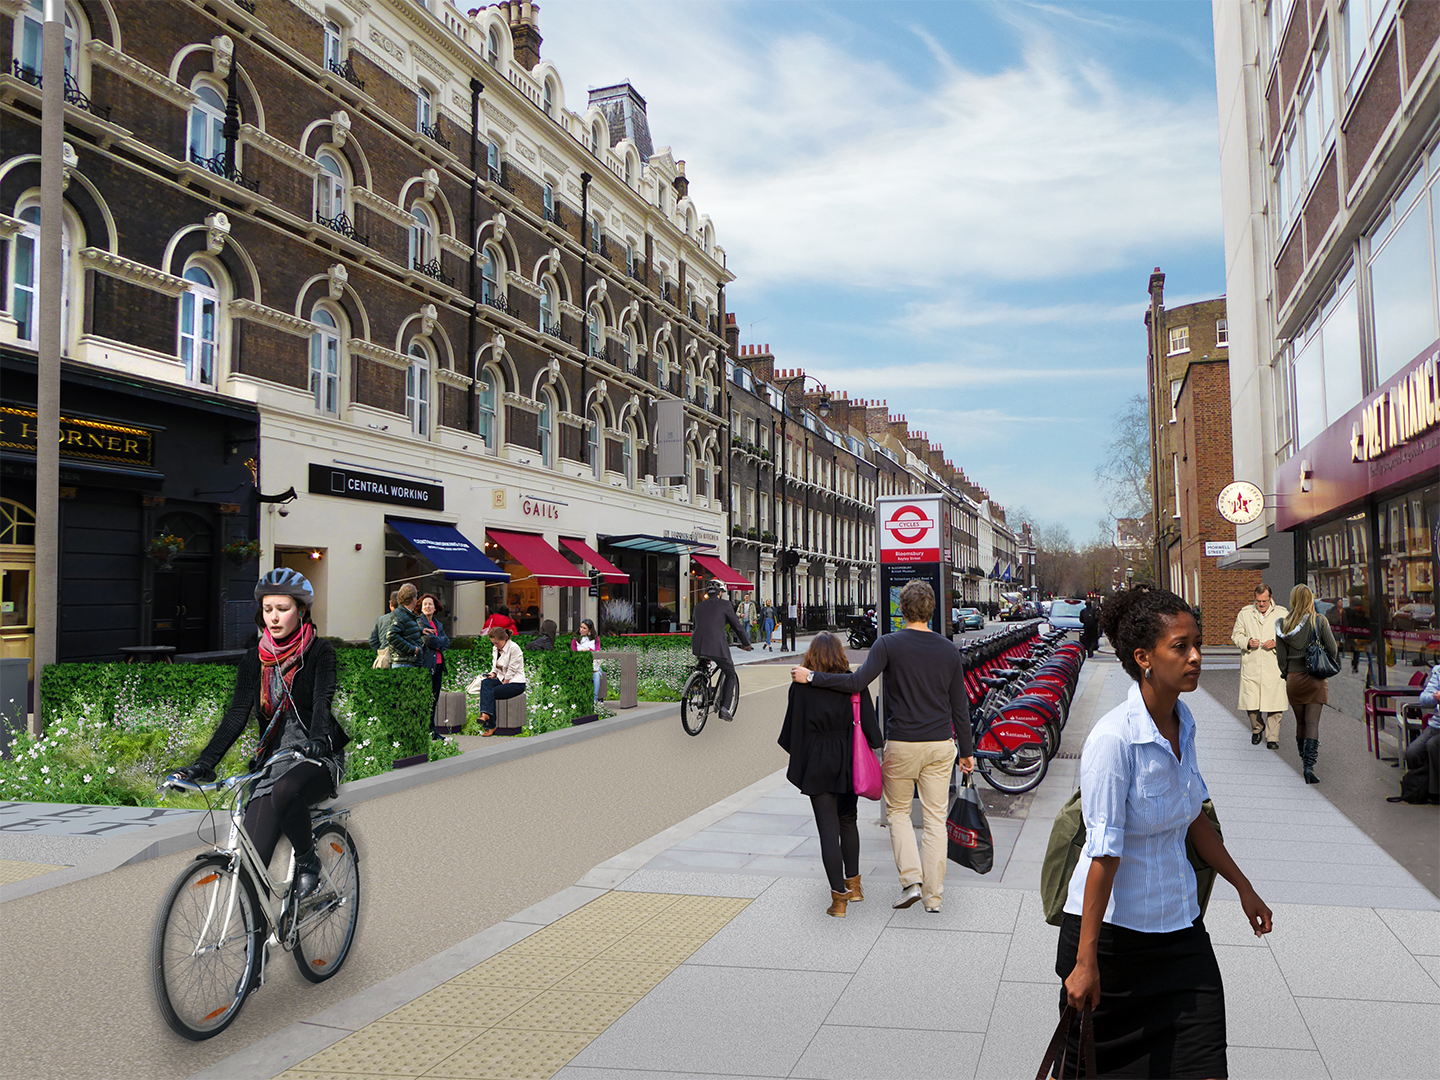 UK Dialogue: How are UK cities adapting their streets for active travel?